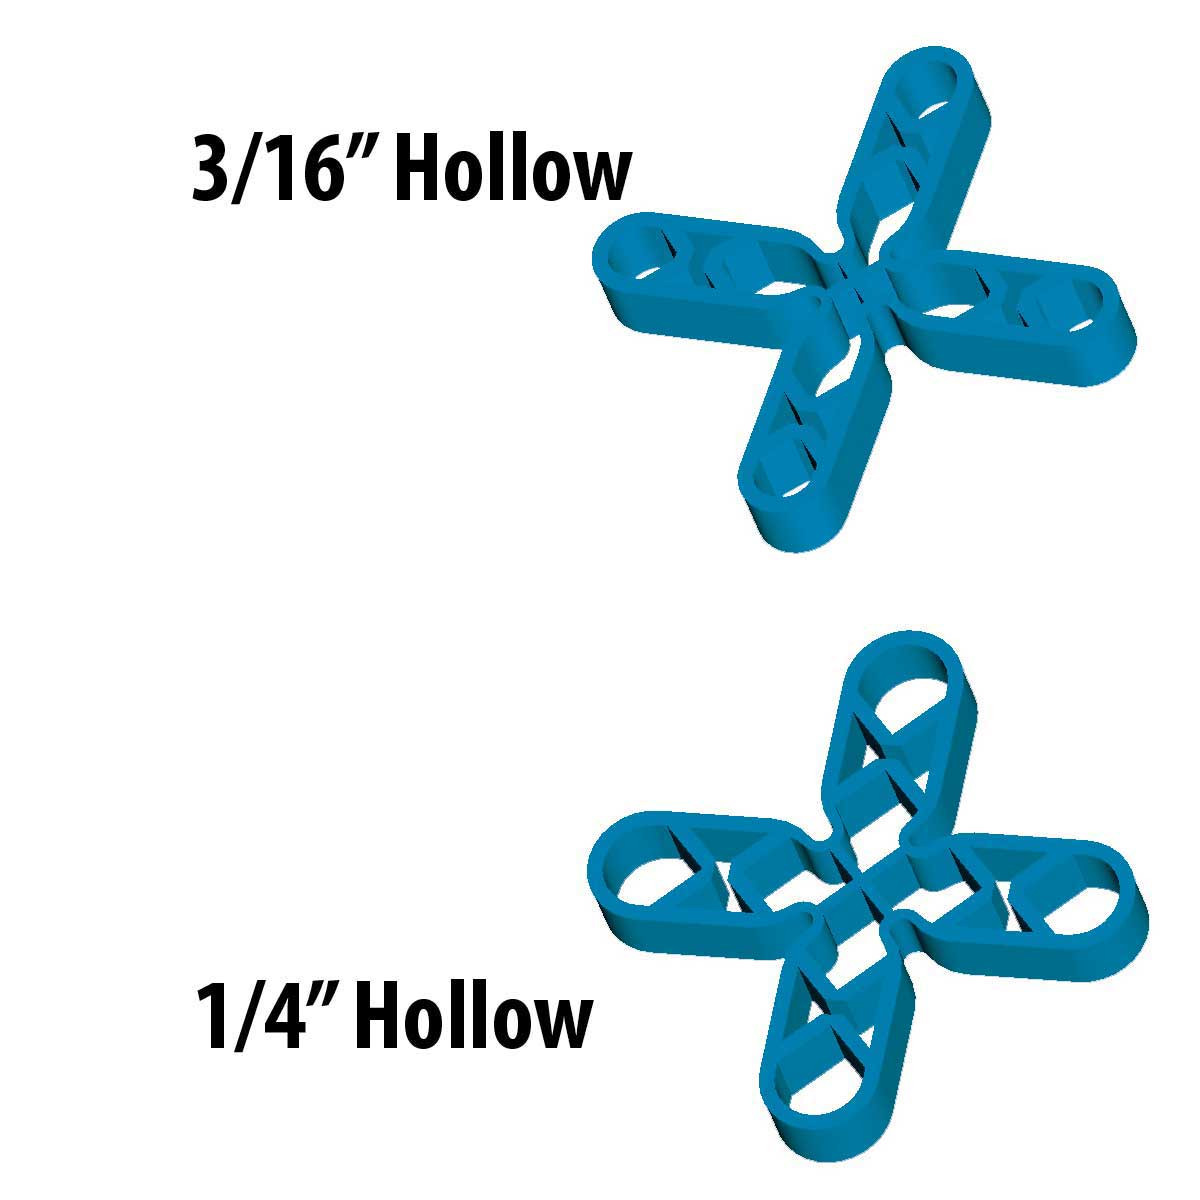 3/16th inch Barwalt Hollow Leave-In Spacers 16030